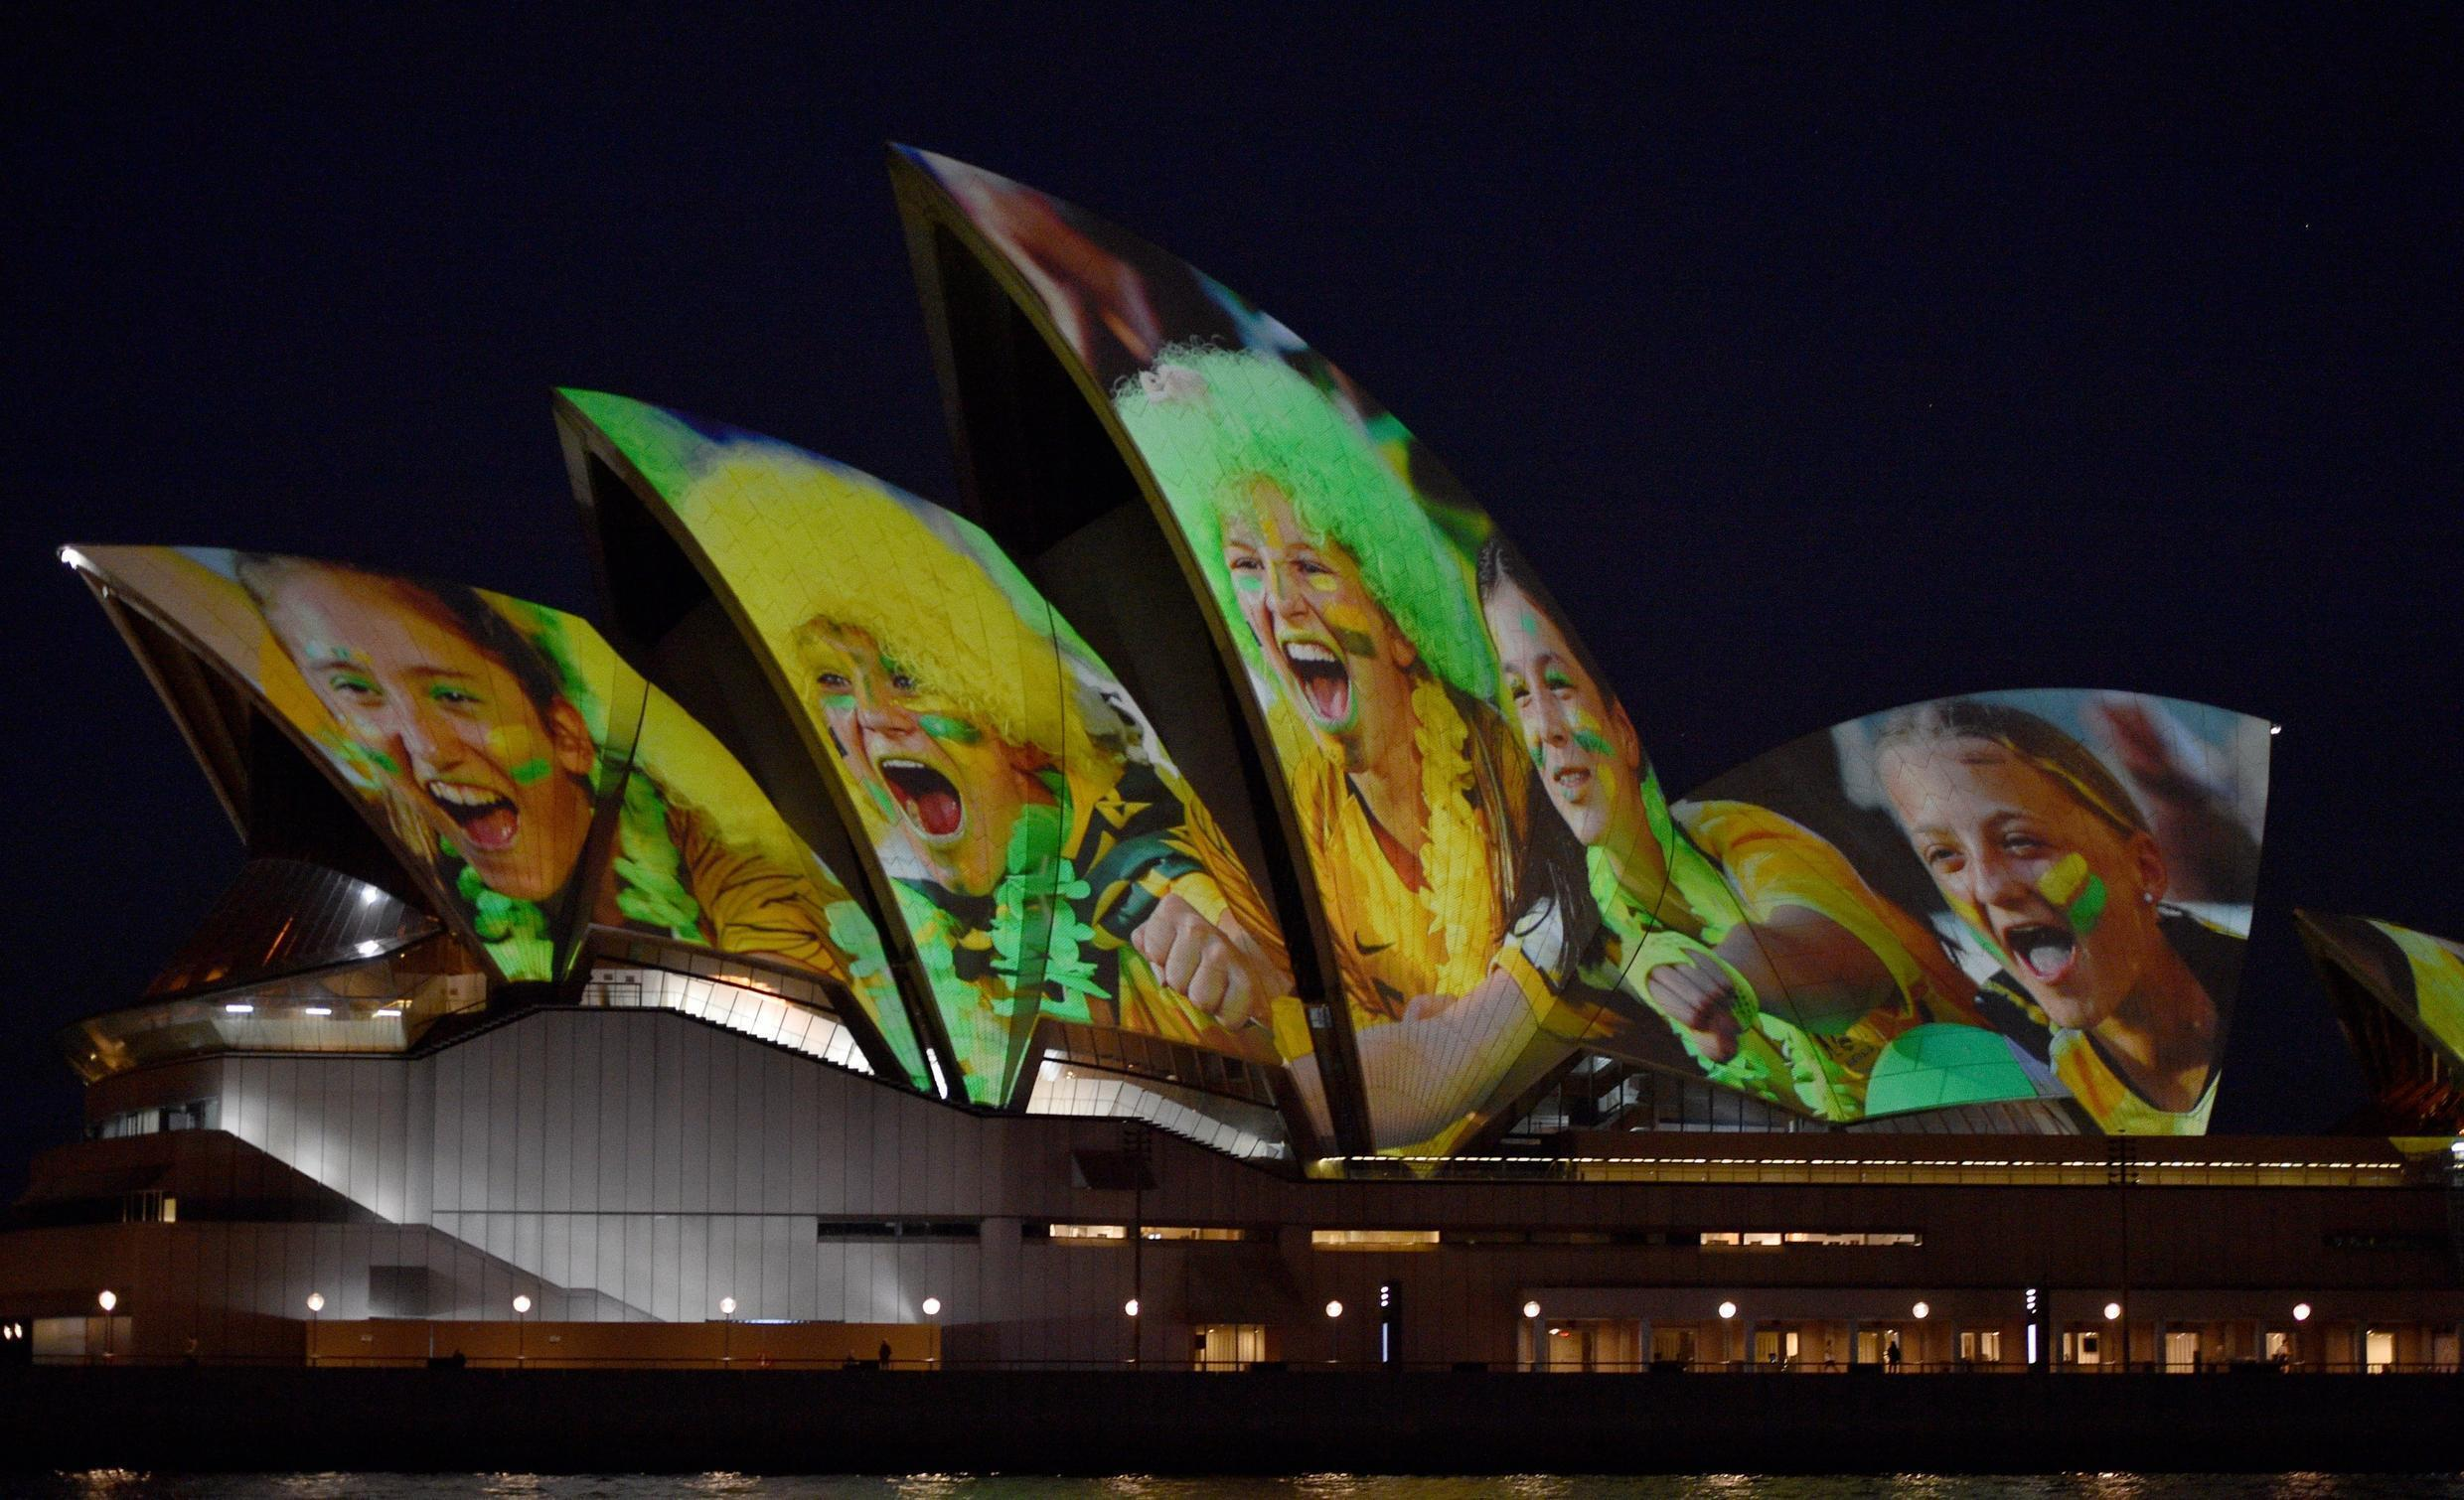 Sydney Opera House is lit up in celebration of Australia and New Zealand's joint bid to host the FIFA Women's World Cup 2023